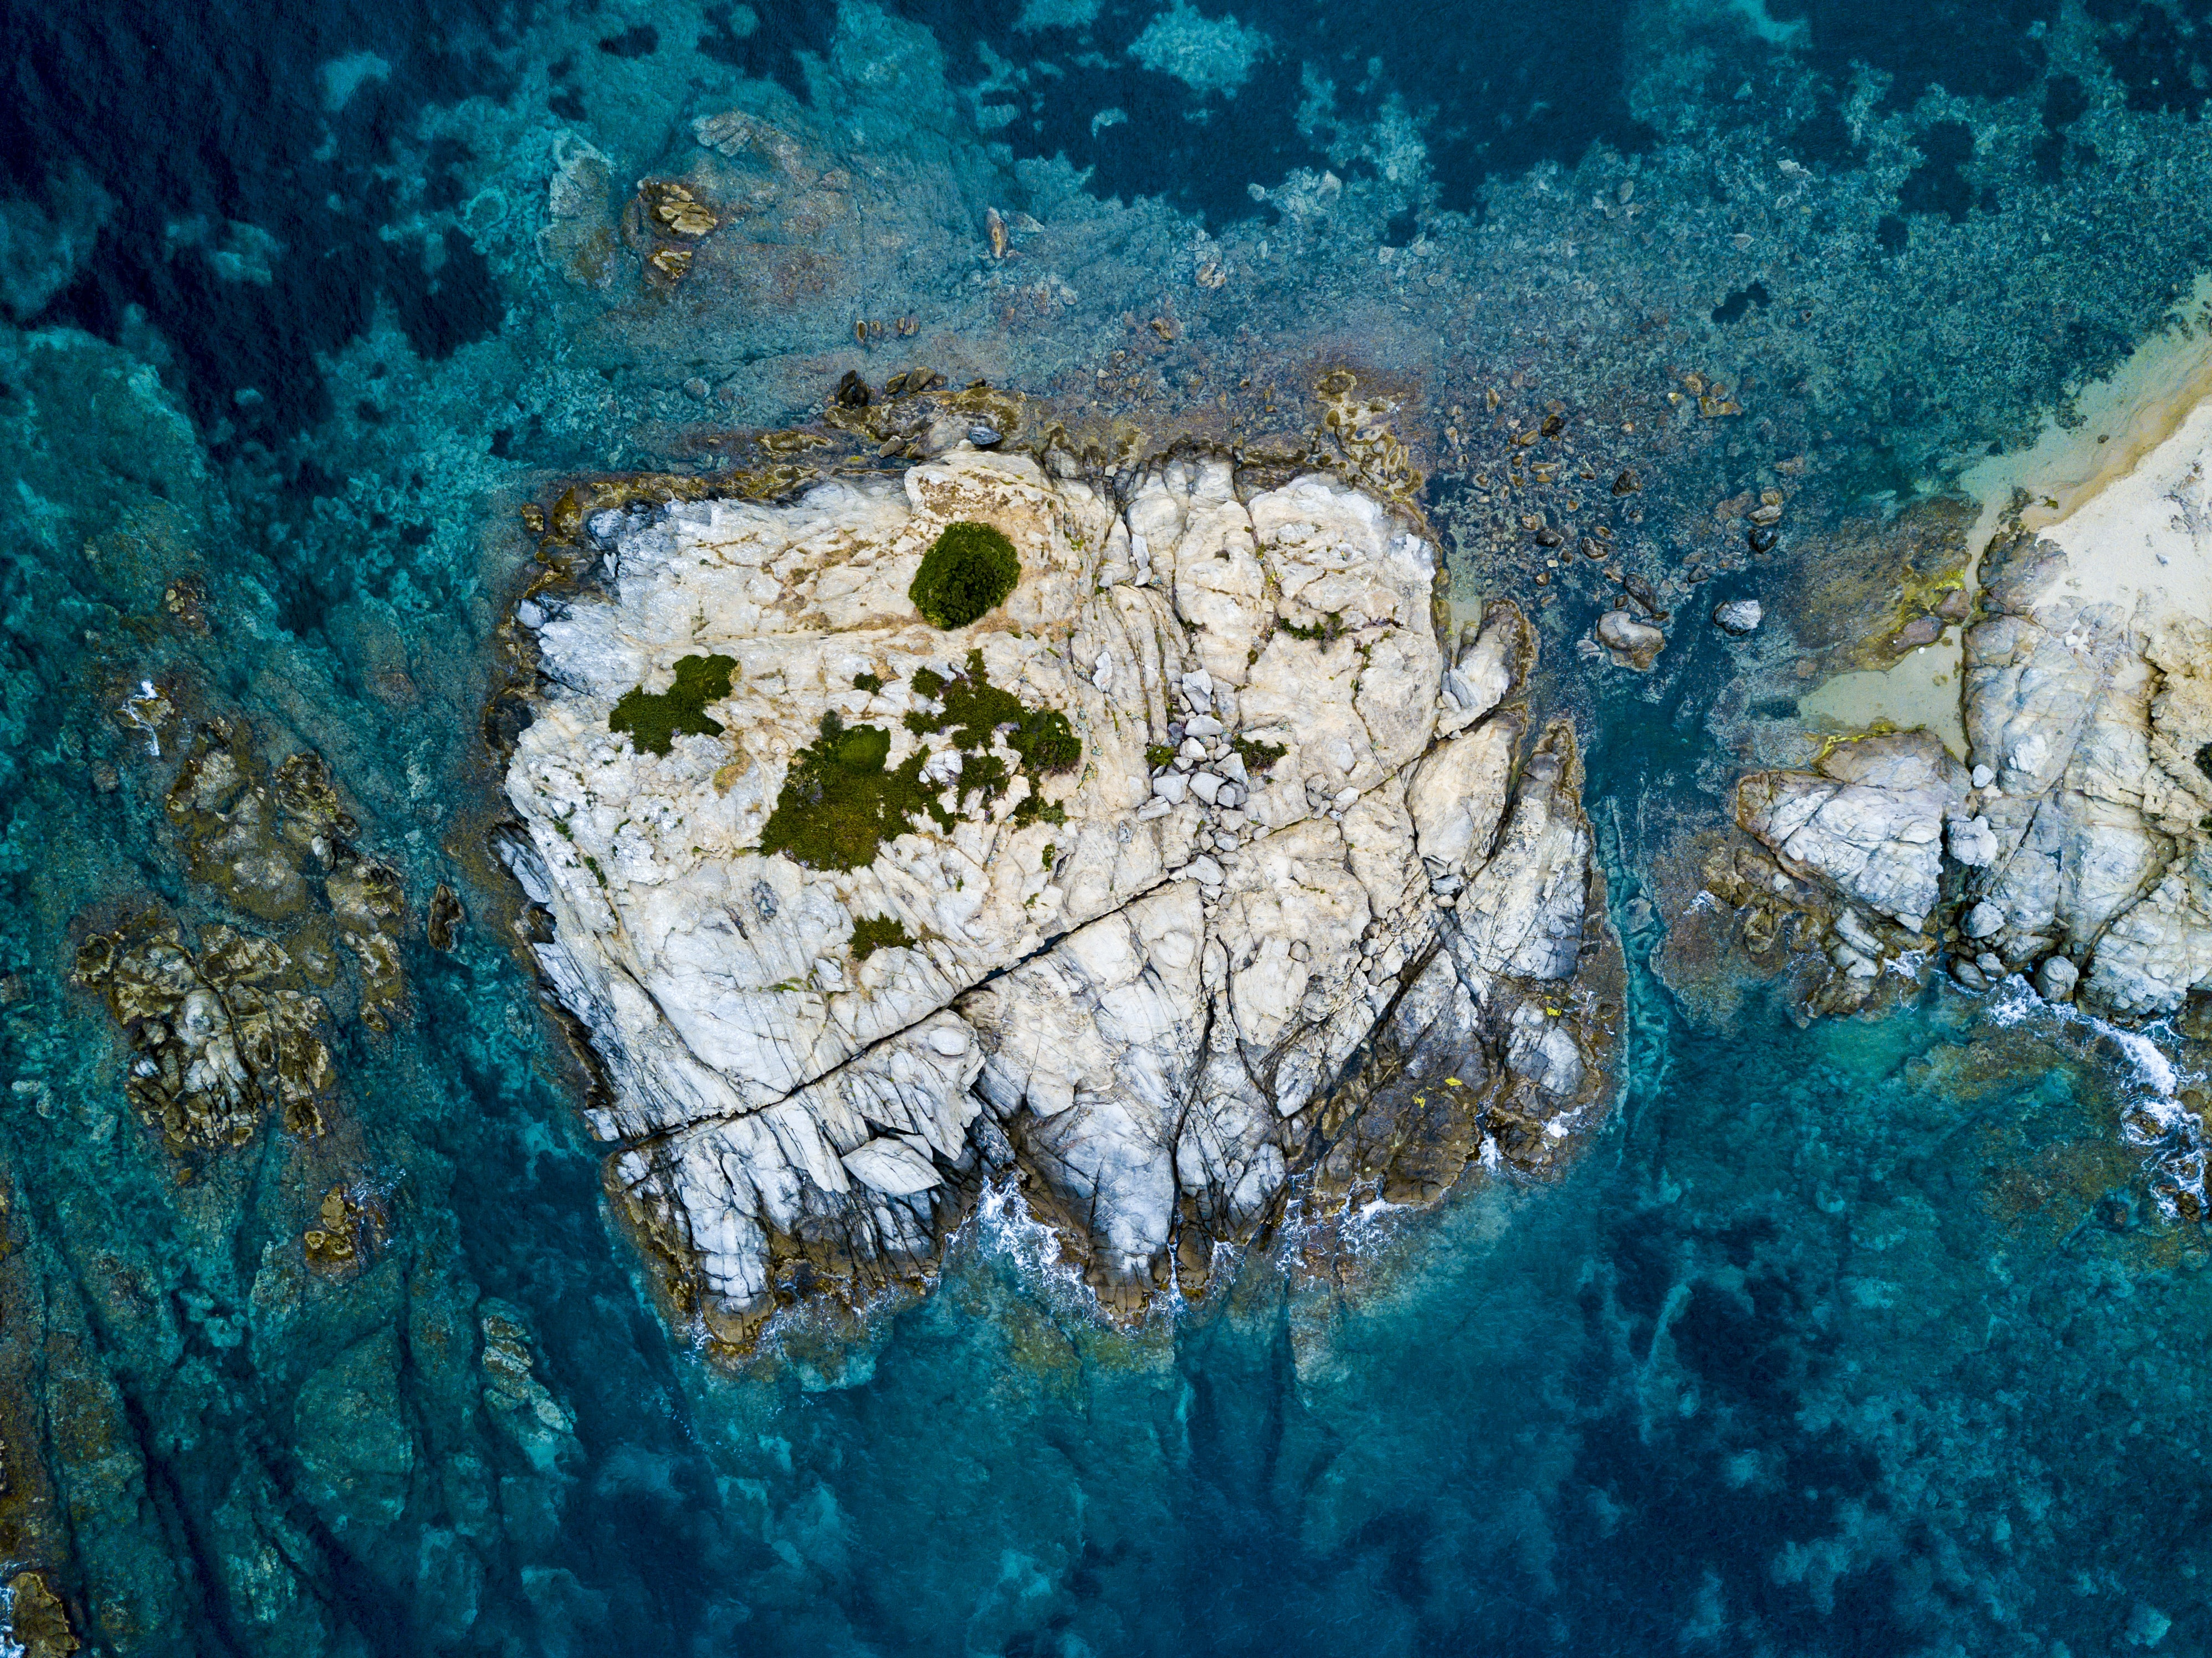 A drone shot of a rocky island in the sea